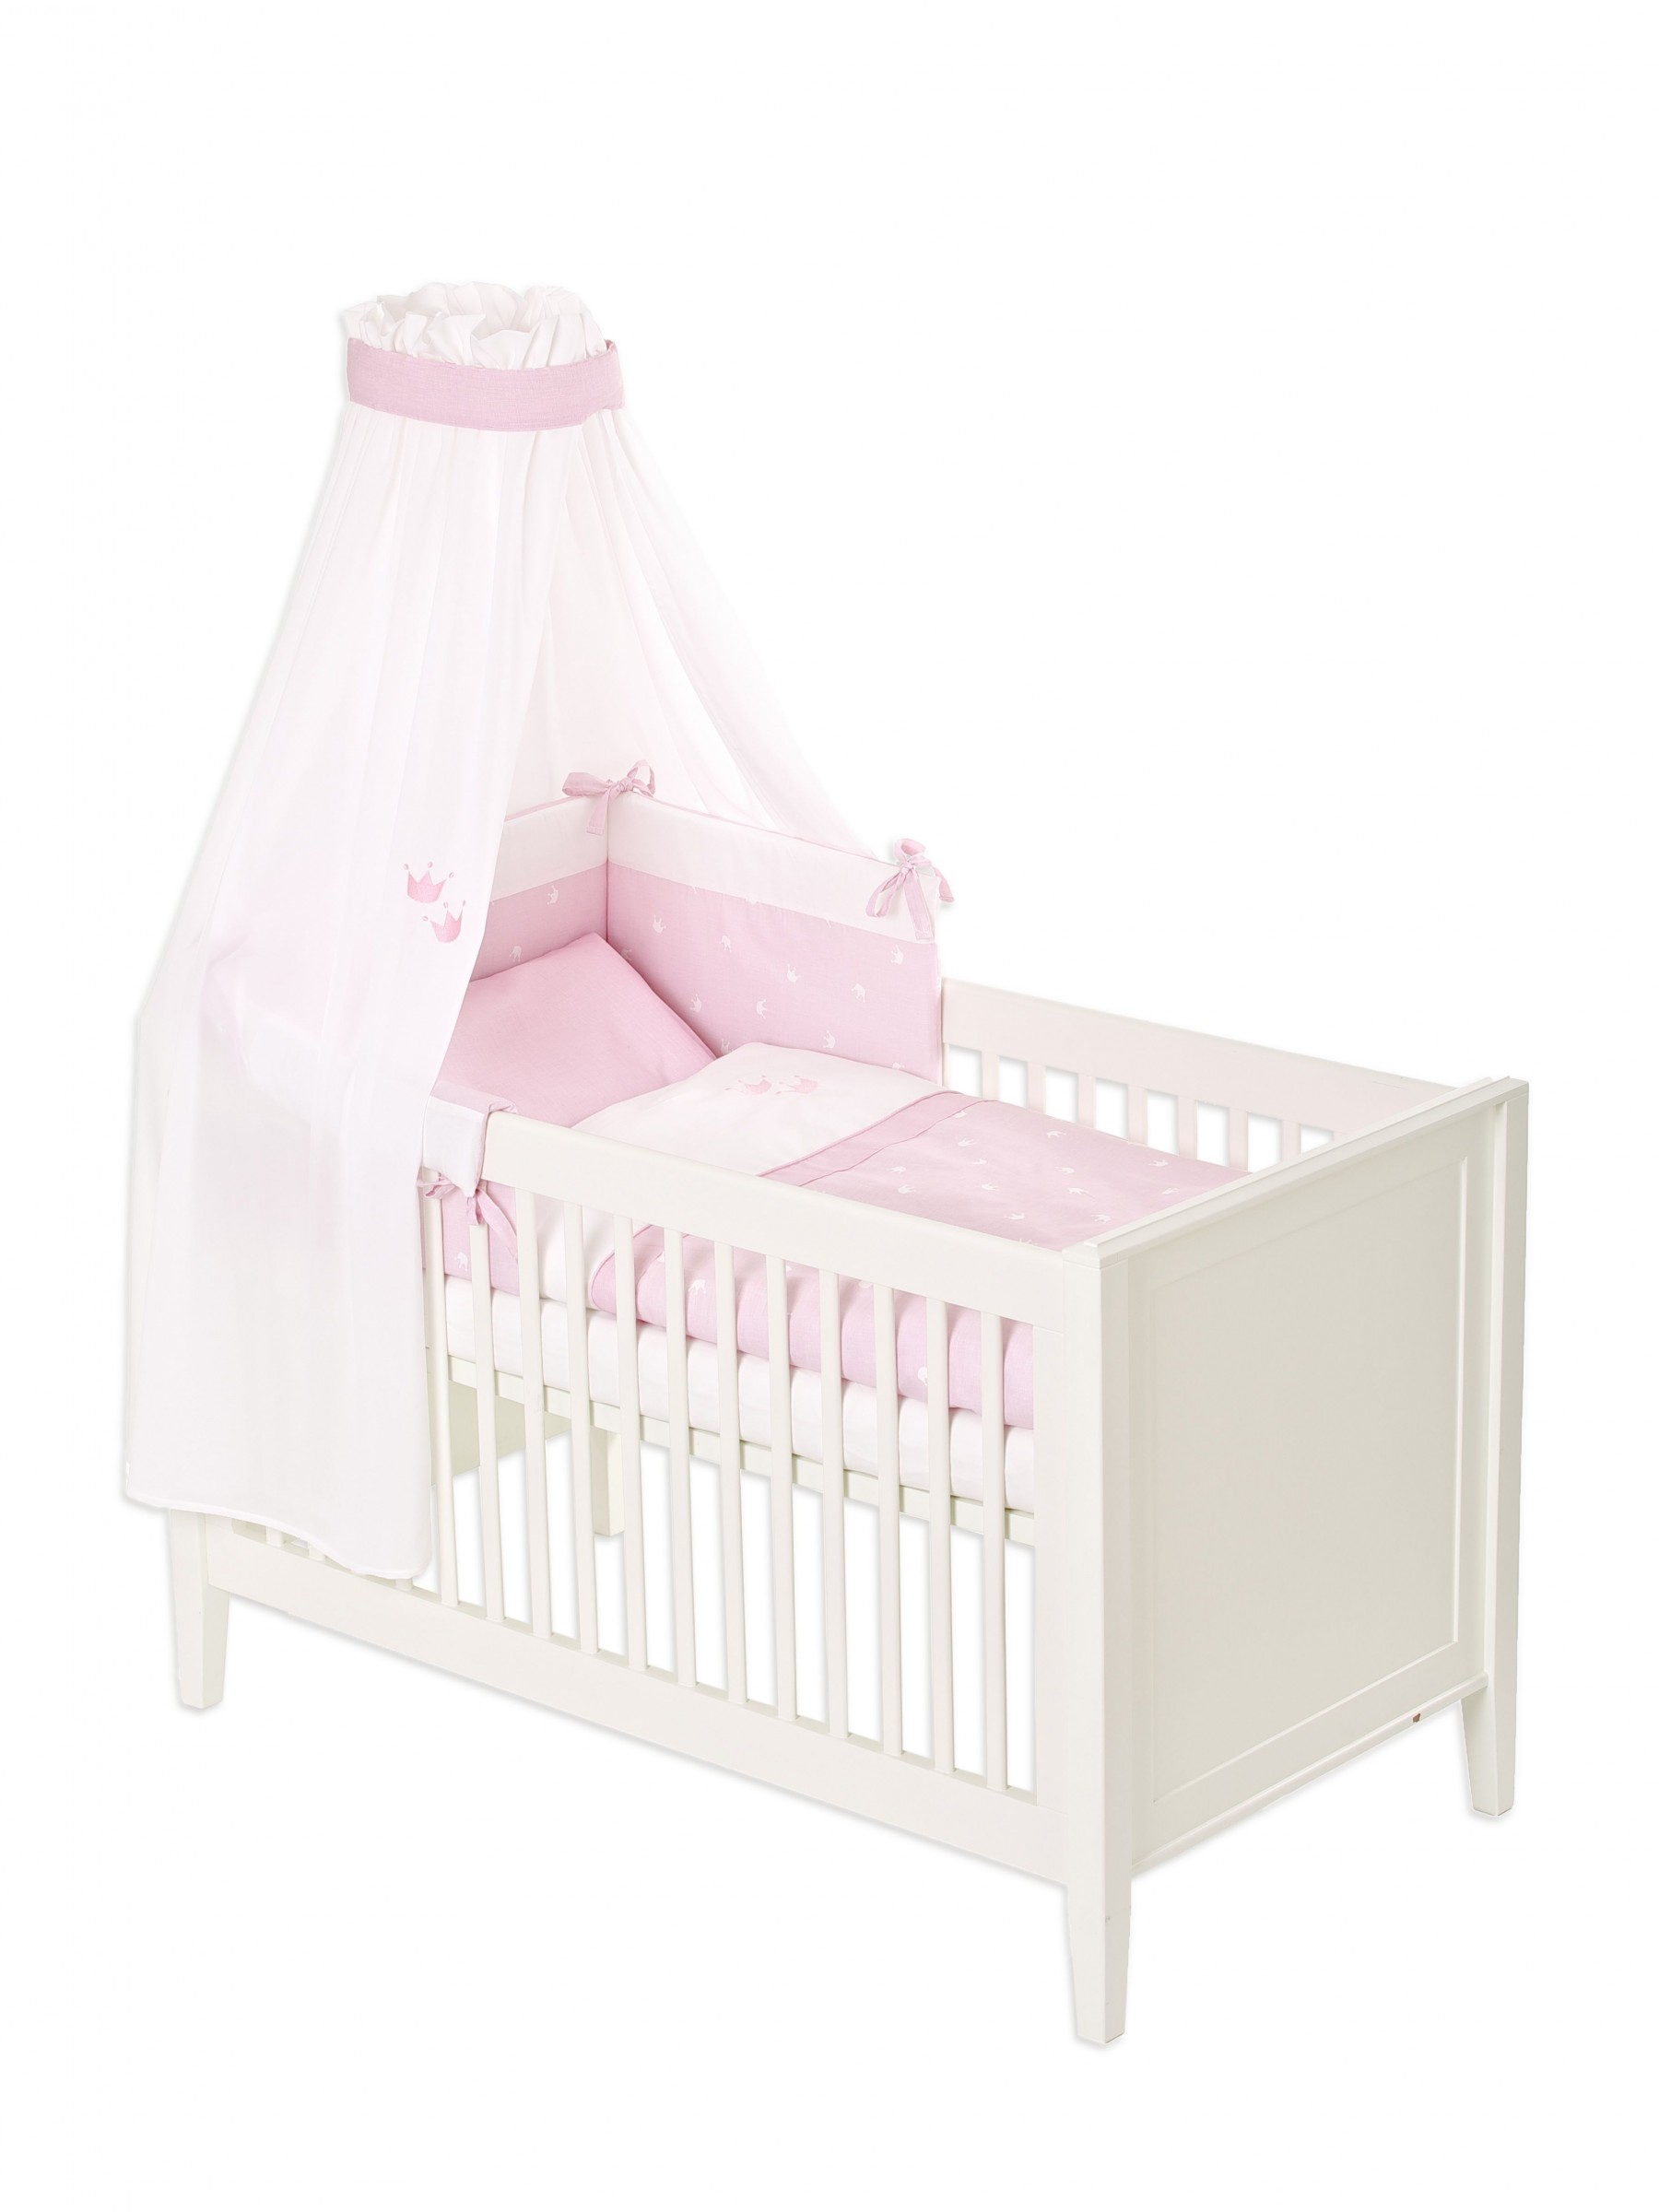 tr umeland bettset krone rosa g nstig und sicher kaufen kinderhaus blaub r. Black Bedroom Furniture Sets. Home Design Ideas